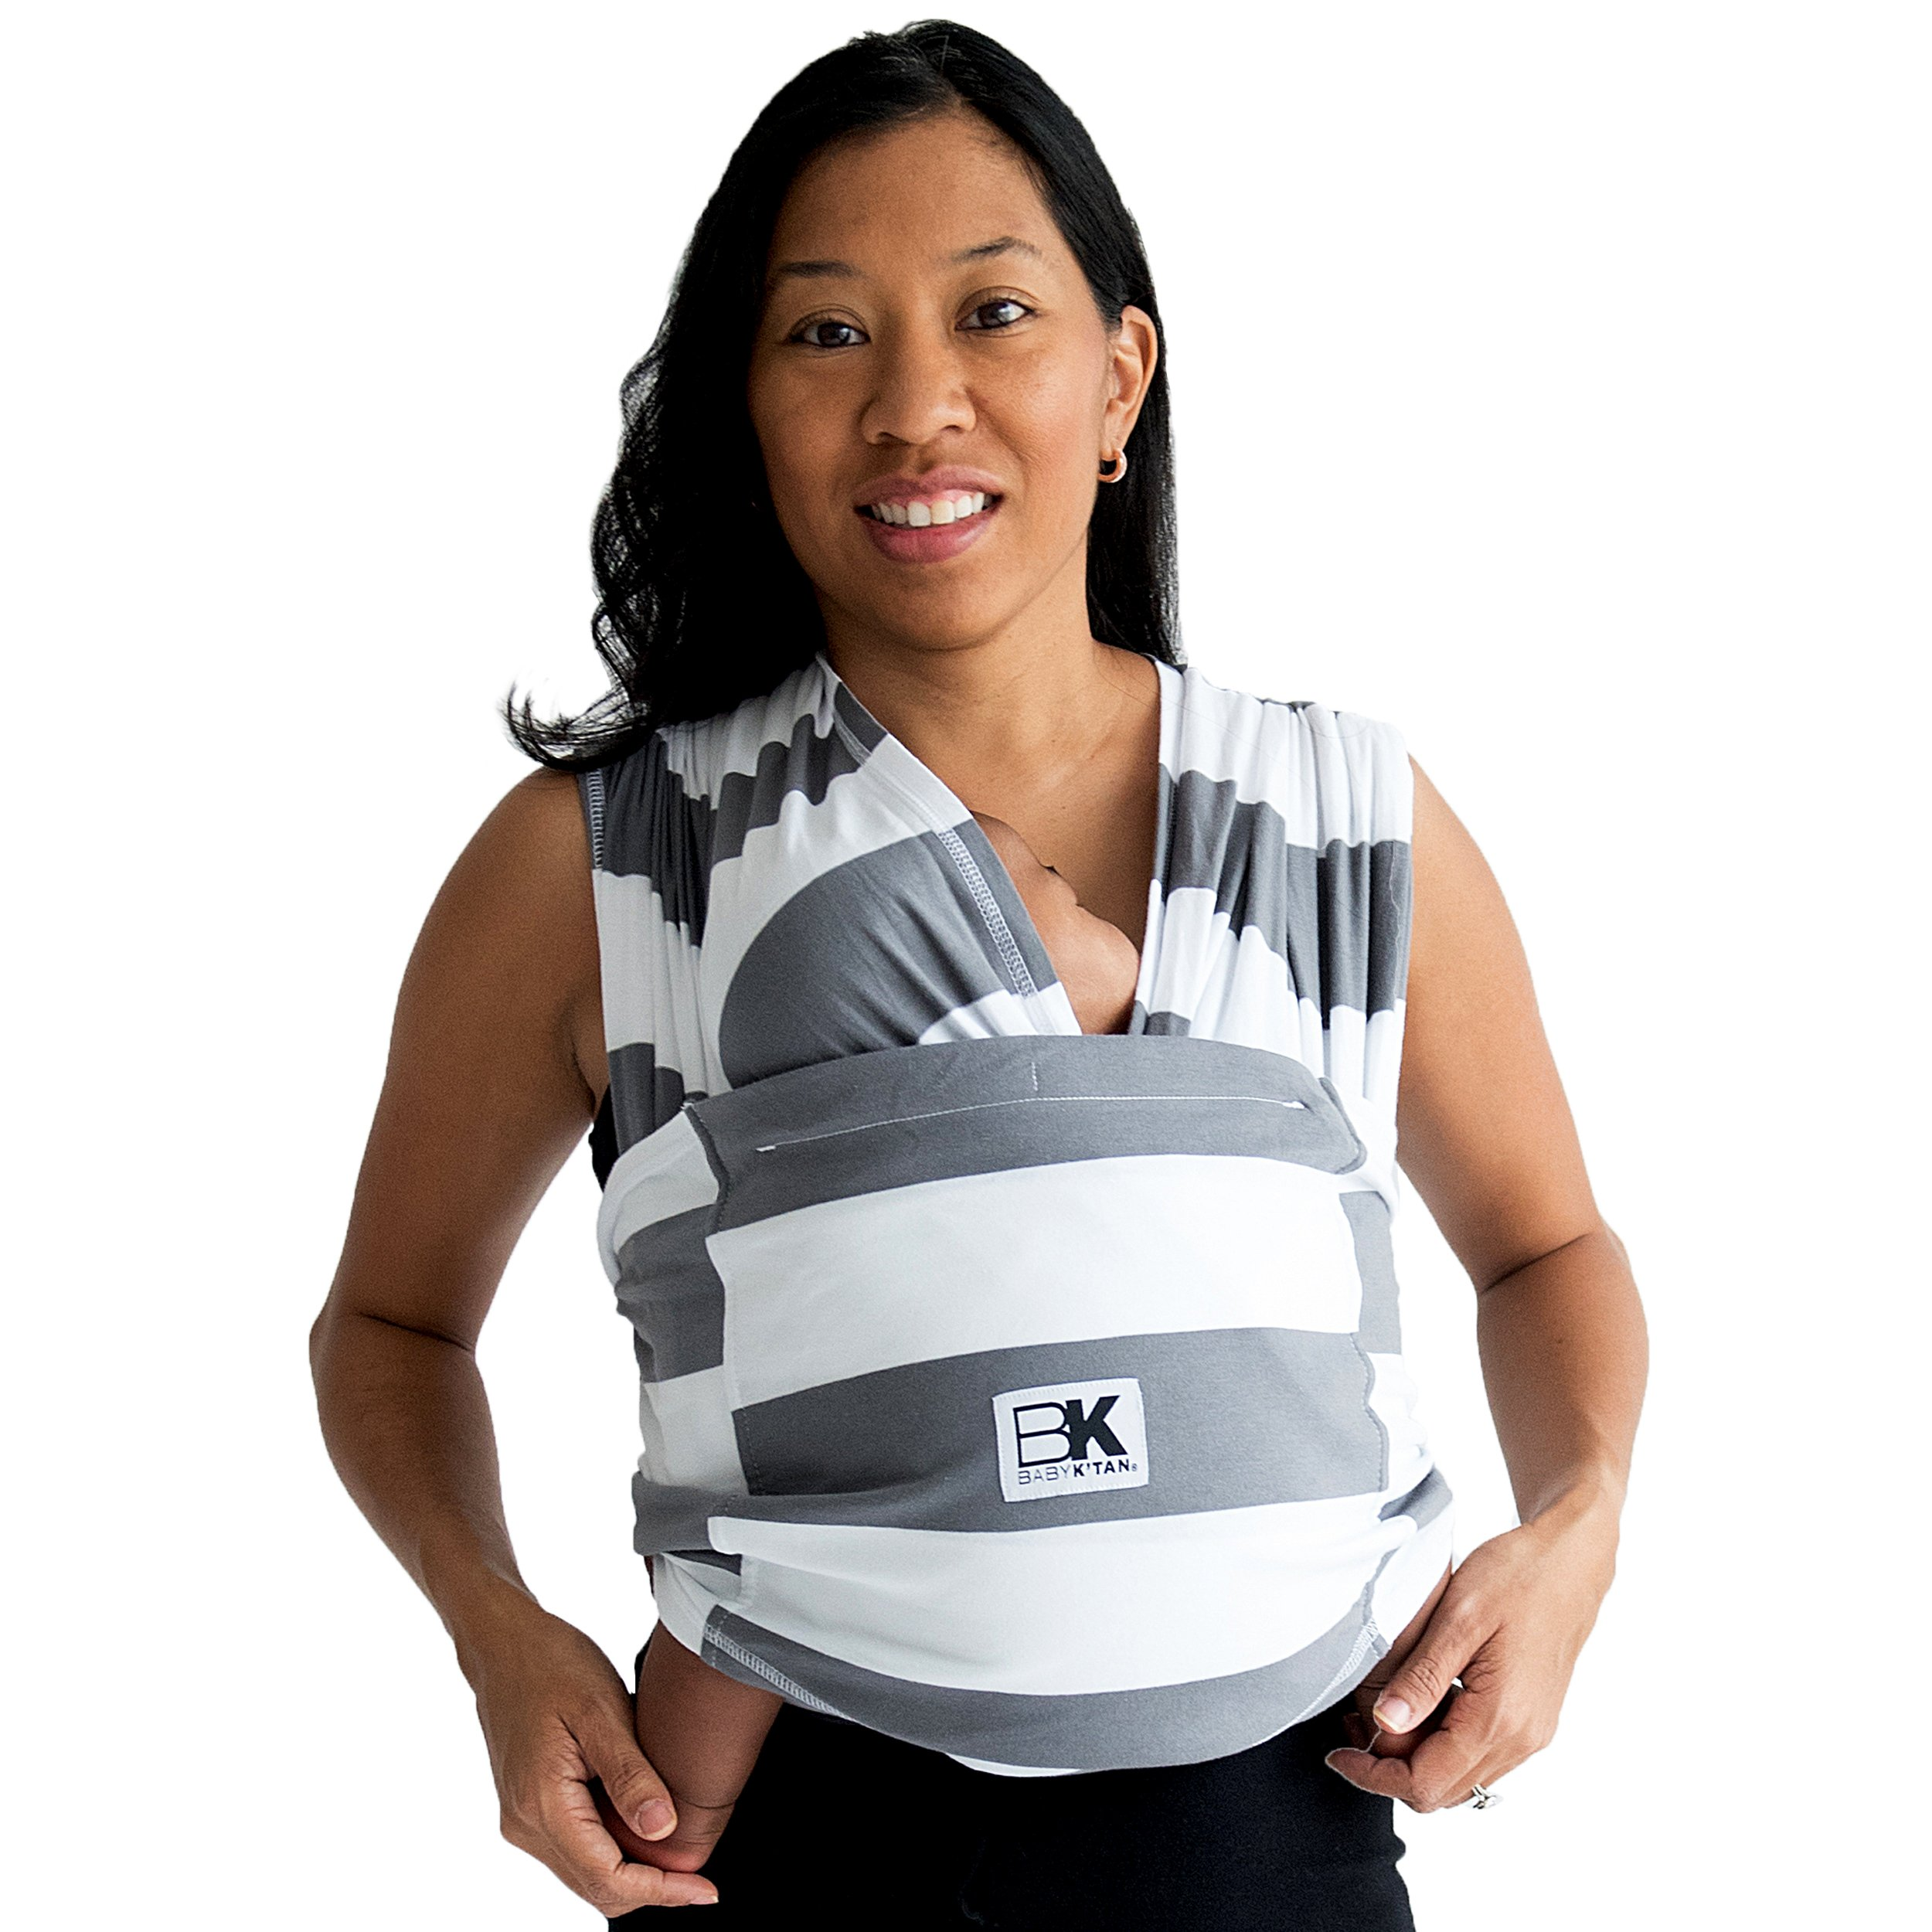 Baby K'tan PRINT Baby Carrier, Charcoal/White Stripe Soft Cotton (S)